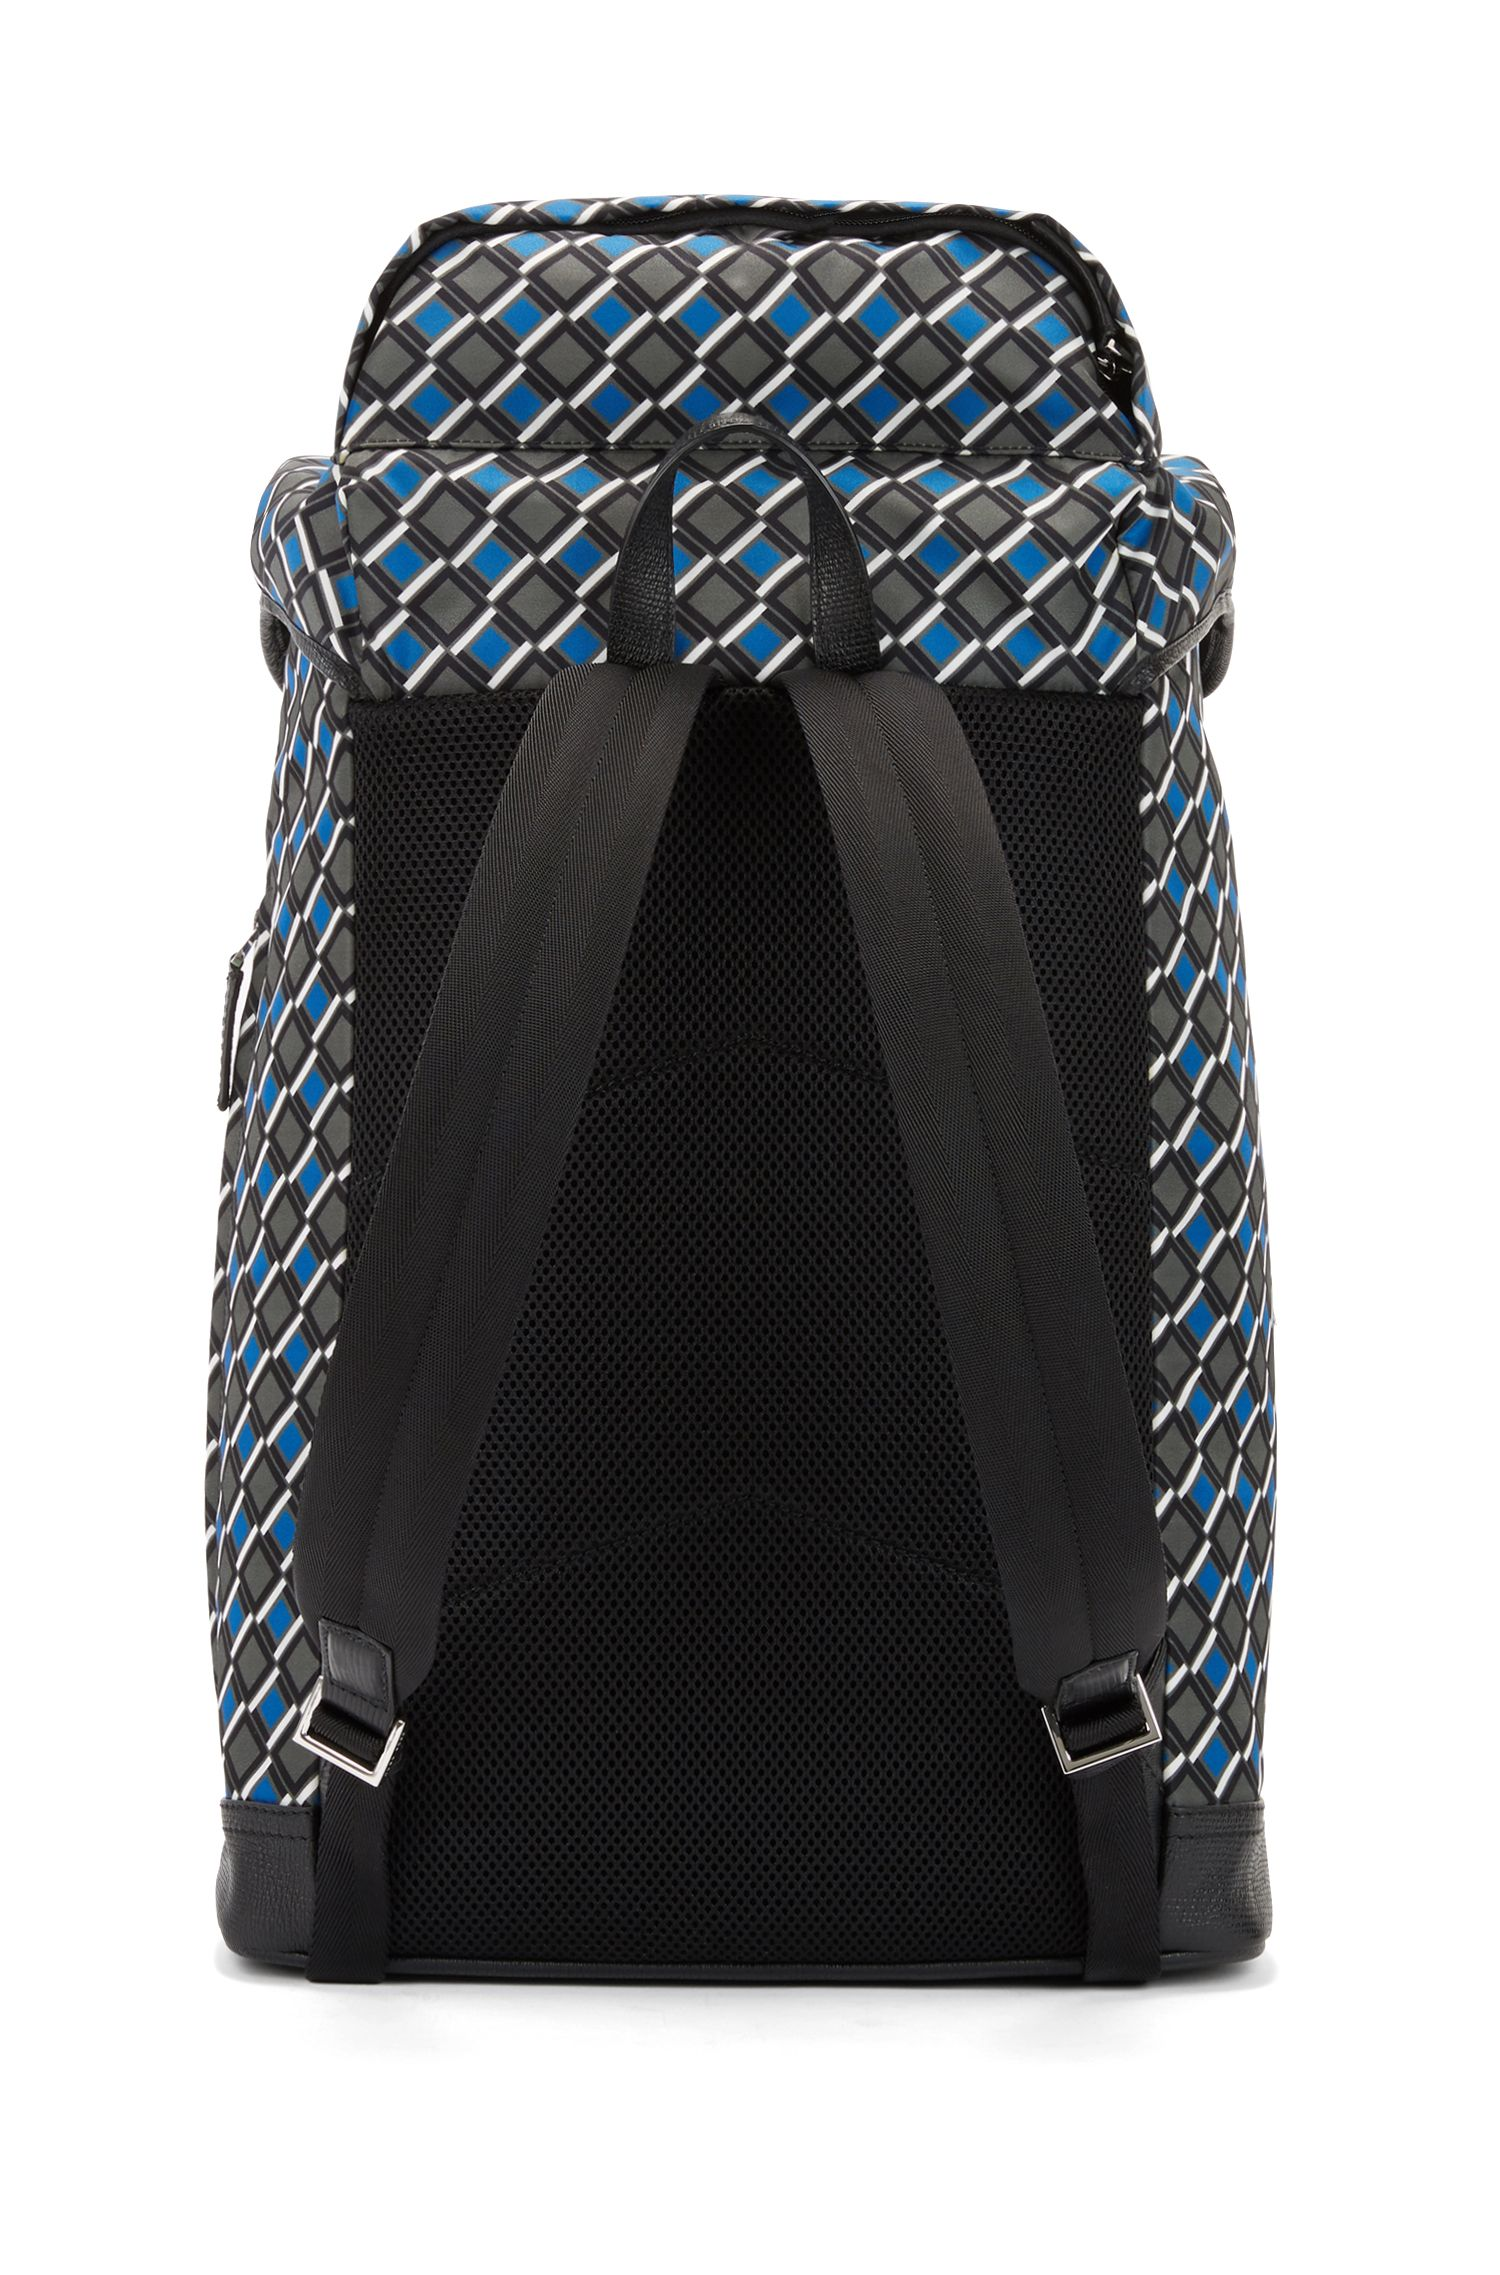 Printed backpack in nylon gabardine with calf-leather trims